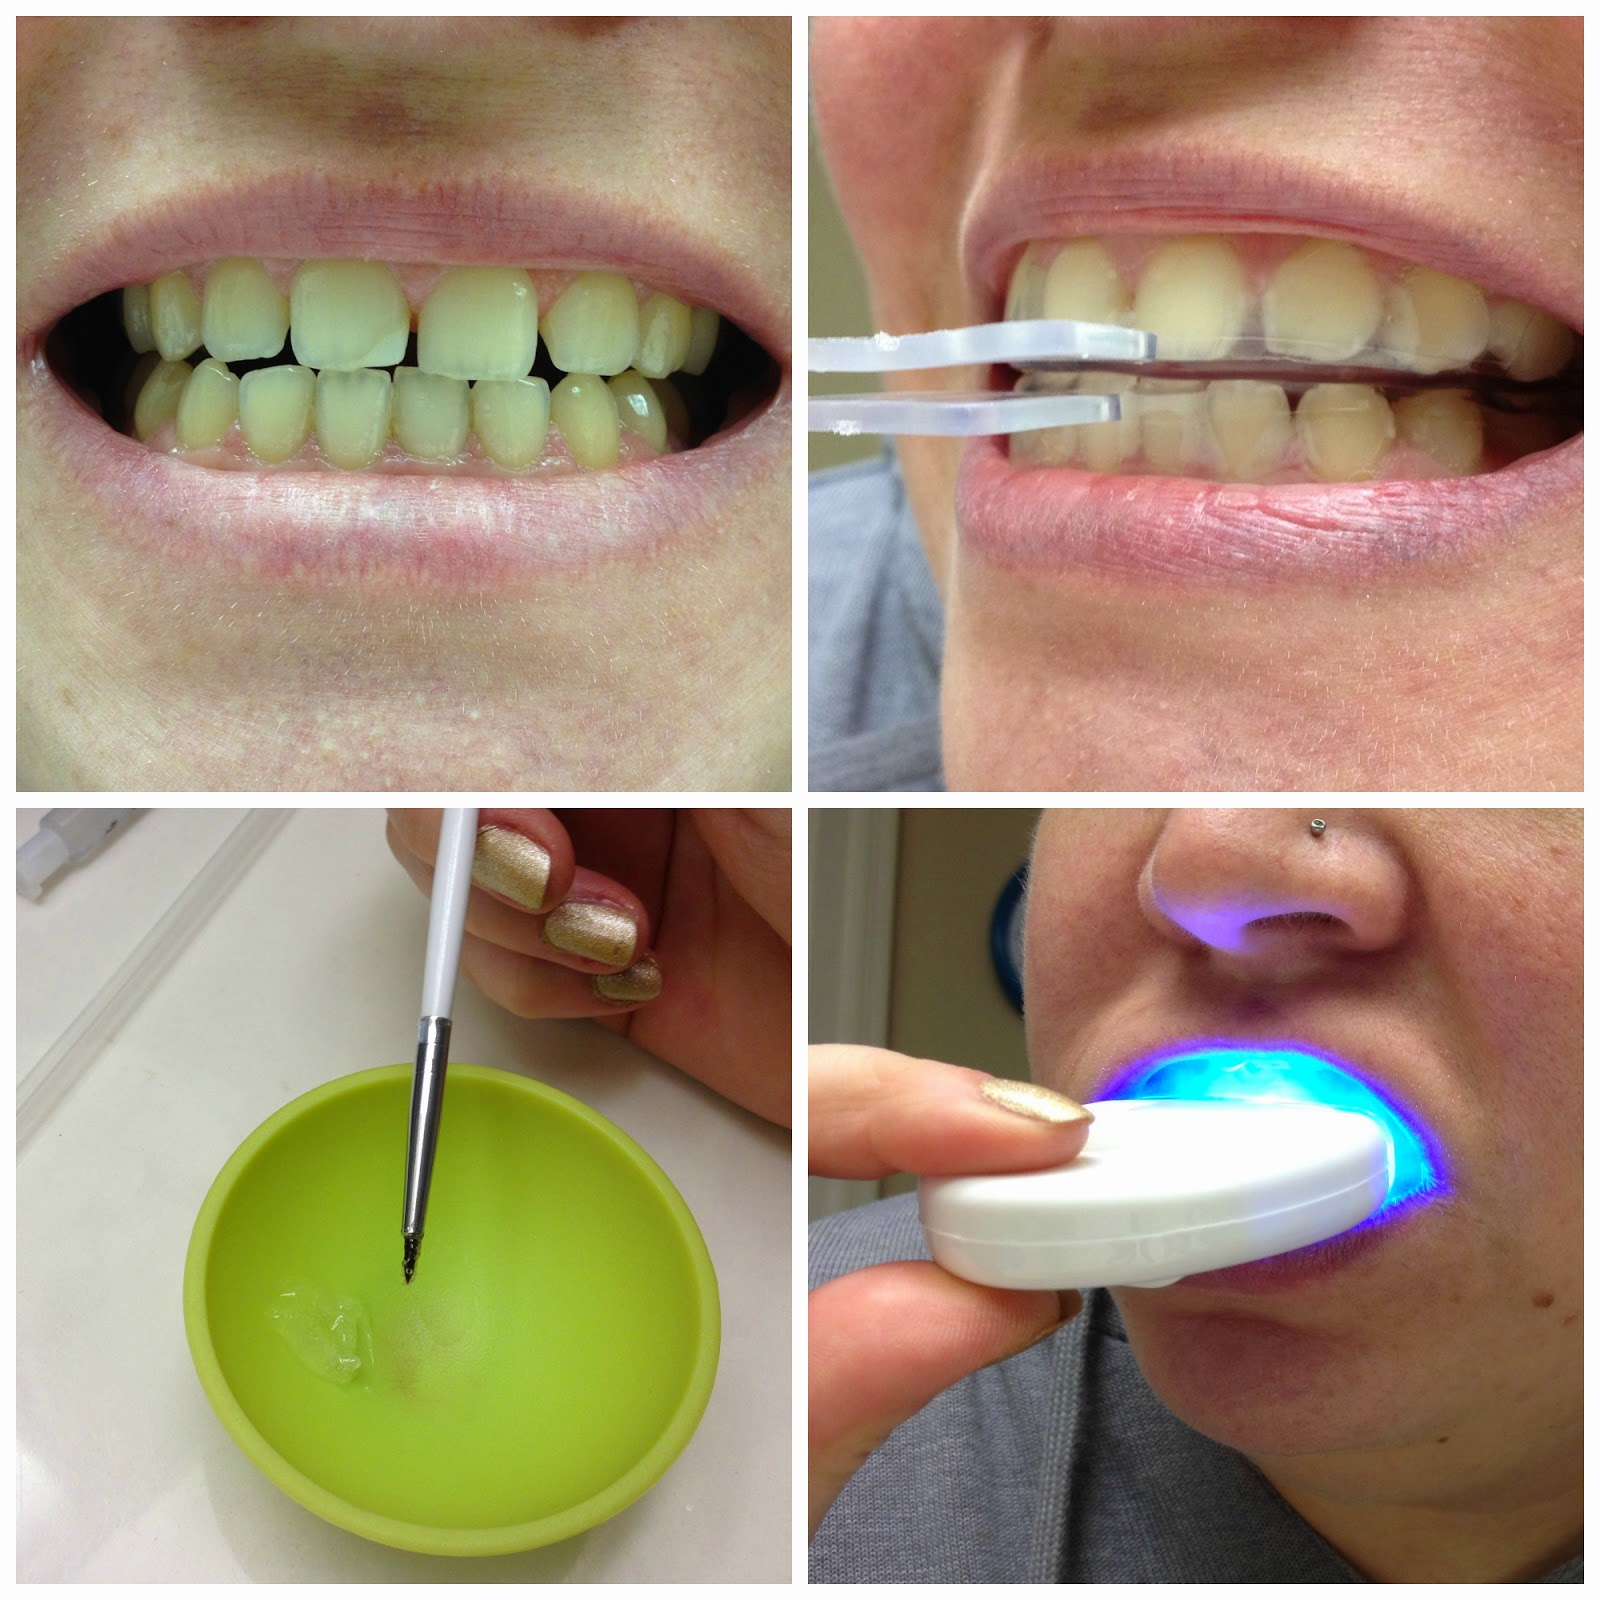 Dr Song Professional Teeth Whitening Kit Review Rixiepixie